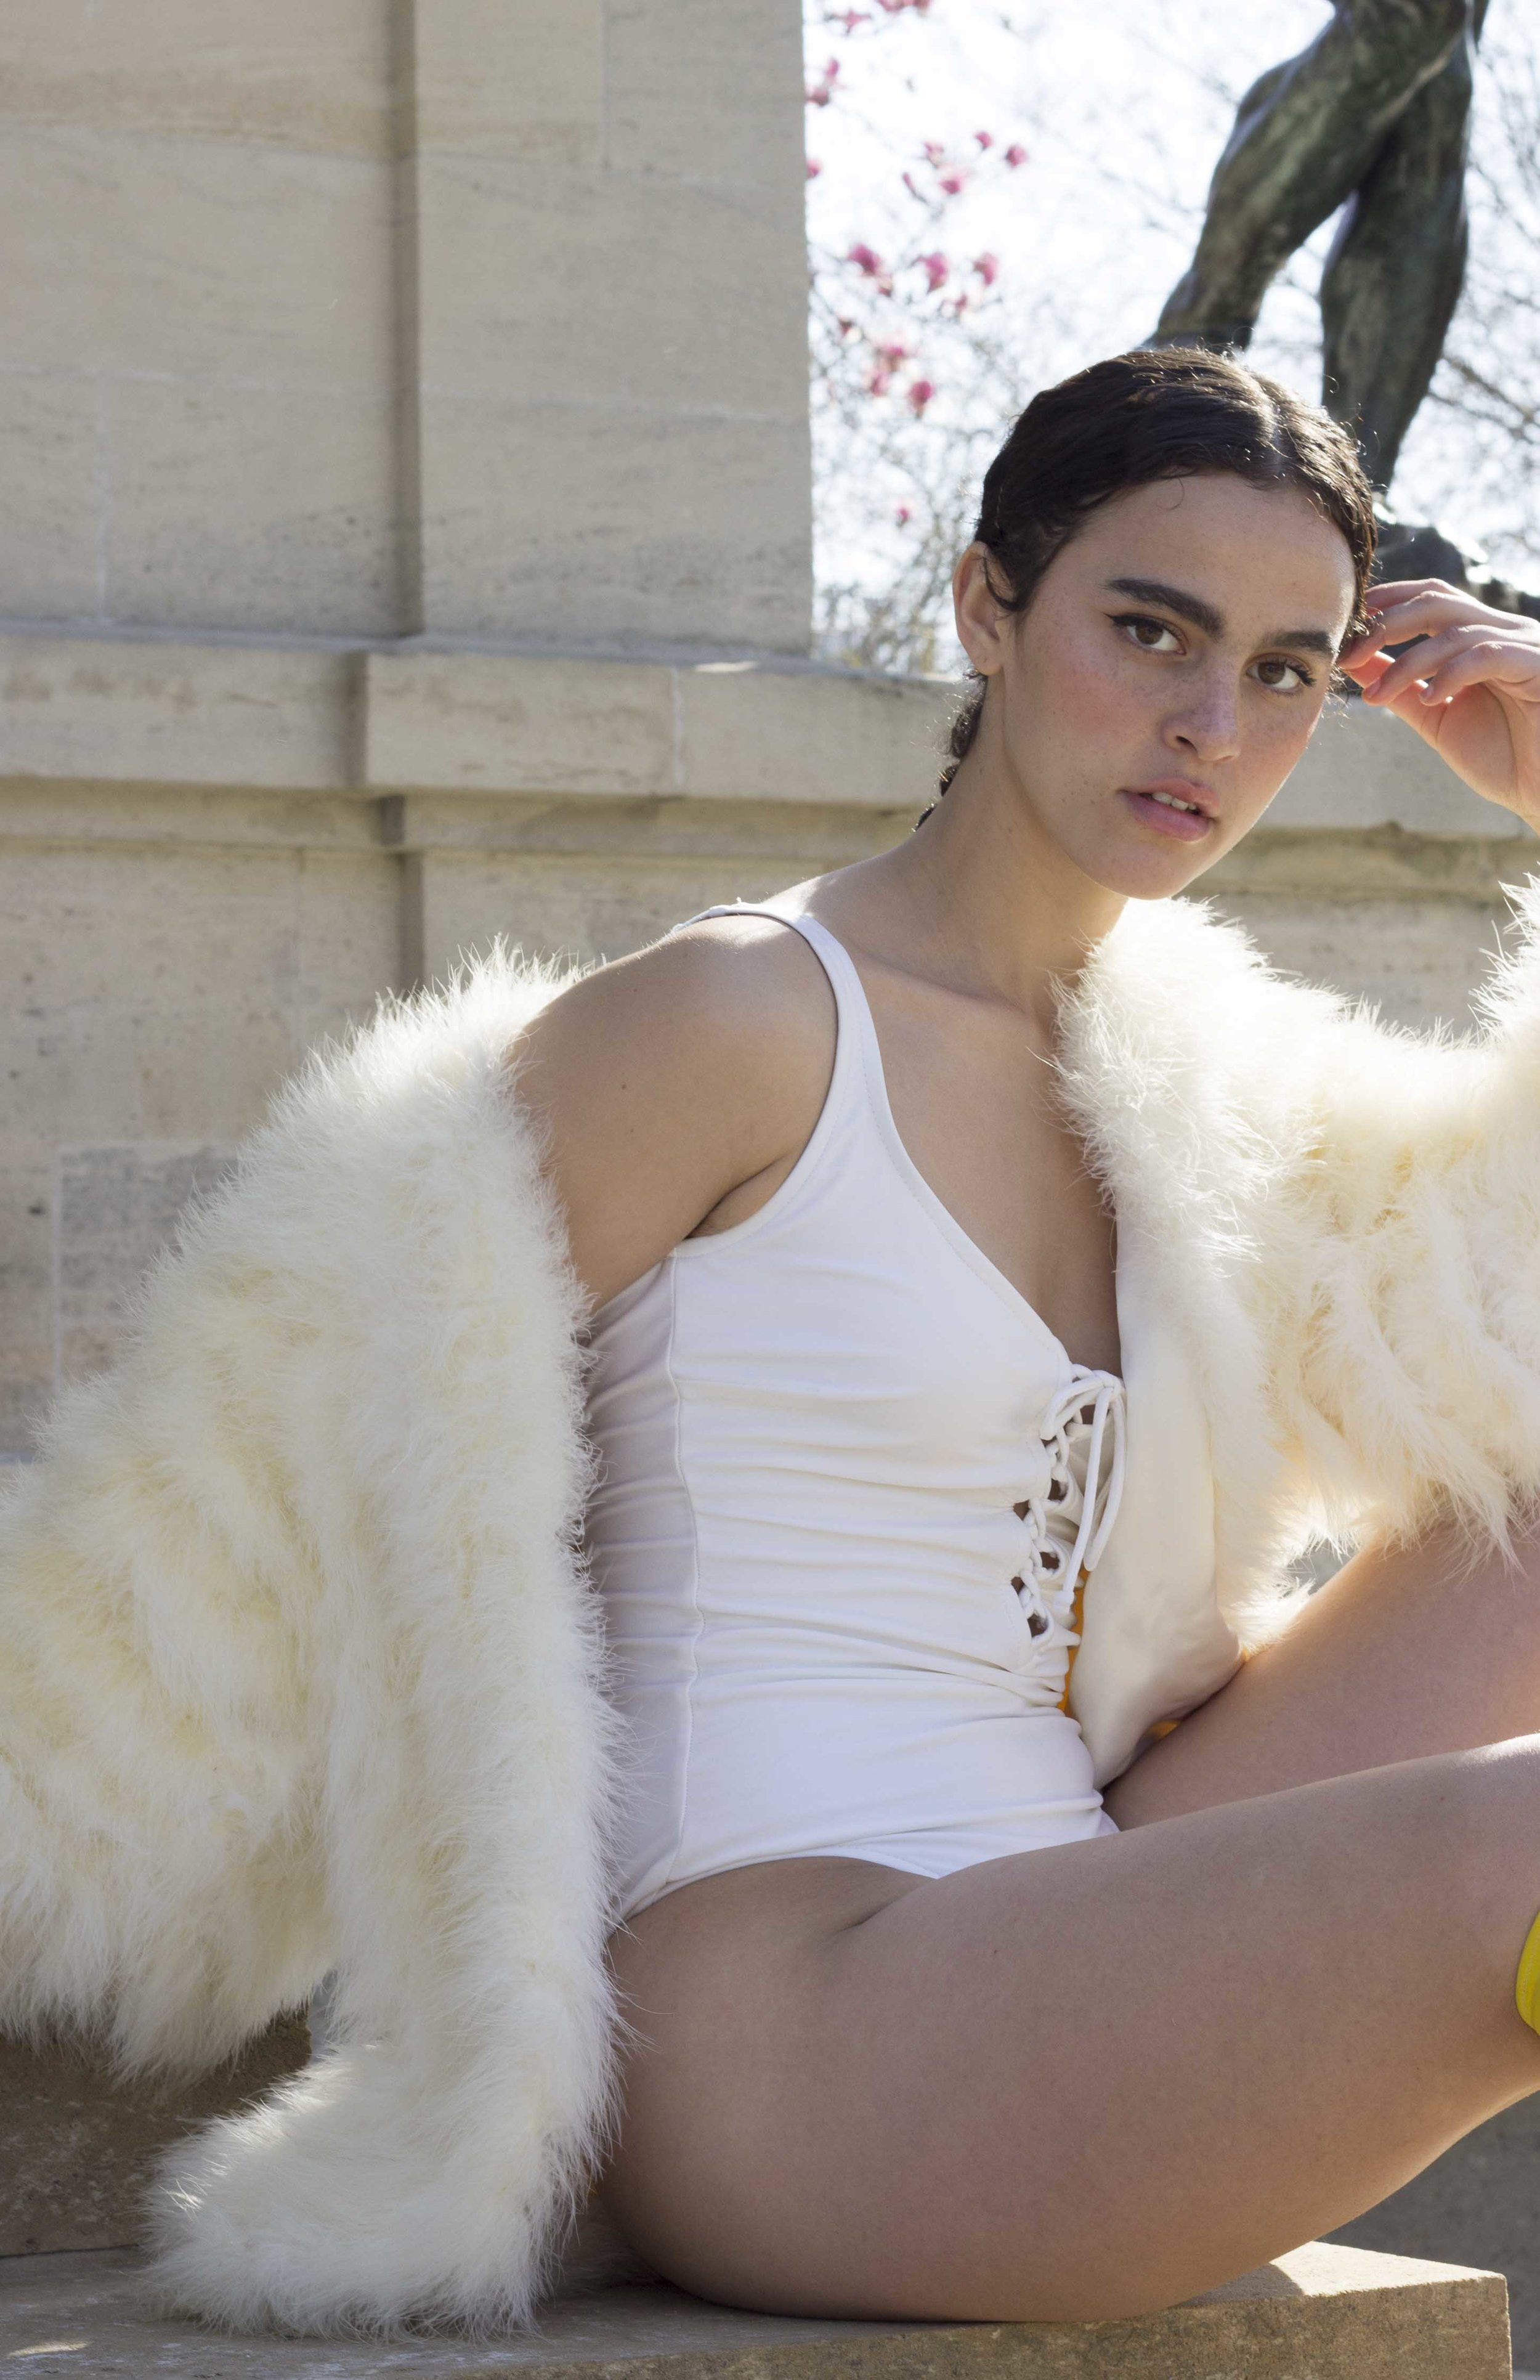 1970s White Maillot and 1970s Creme Marabou Feather Jacket